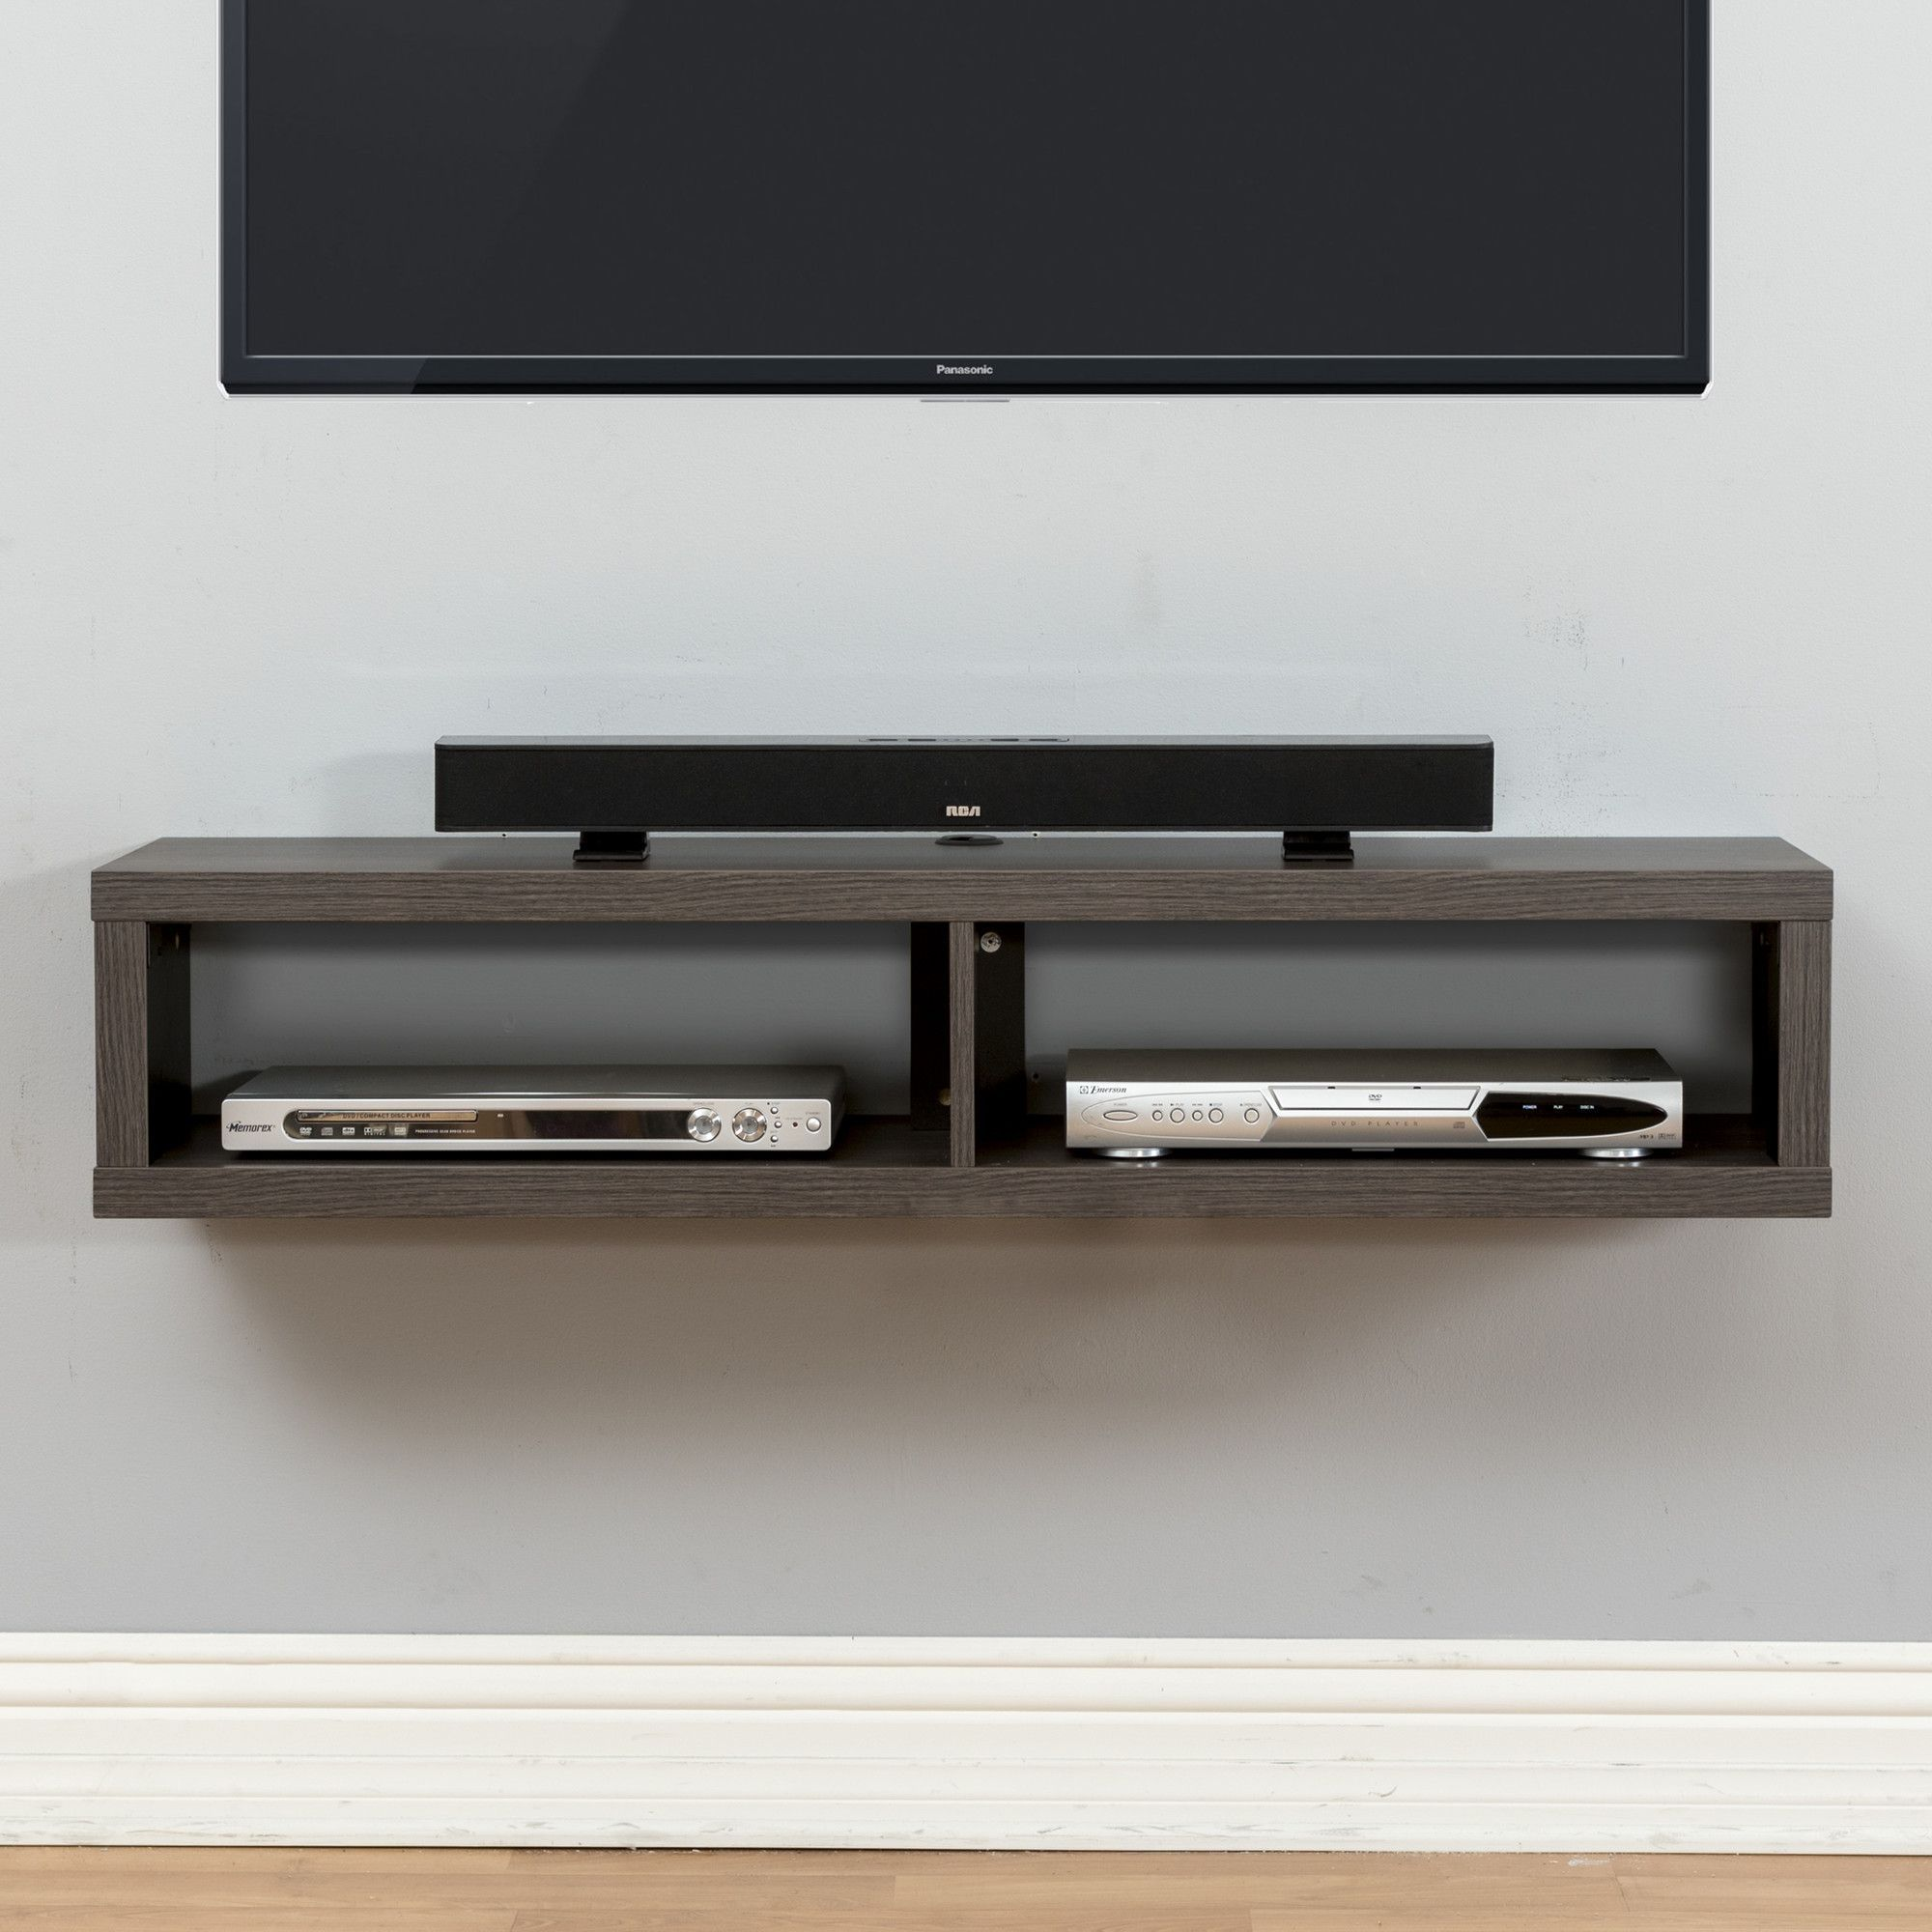 shallow wall mounted stand for tvs home decor floating shelves electronics holds audio video components and sound bar compliment television lbs comes with mounting hardware cream